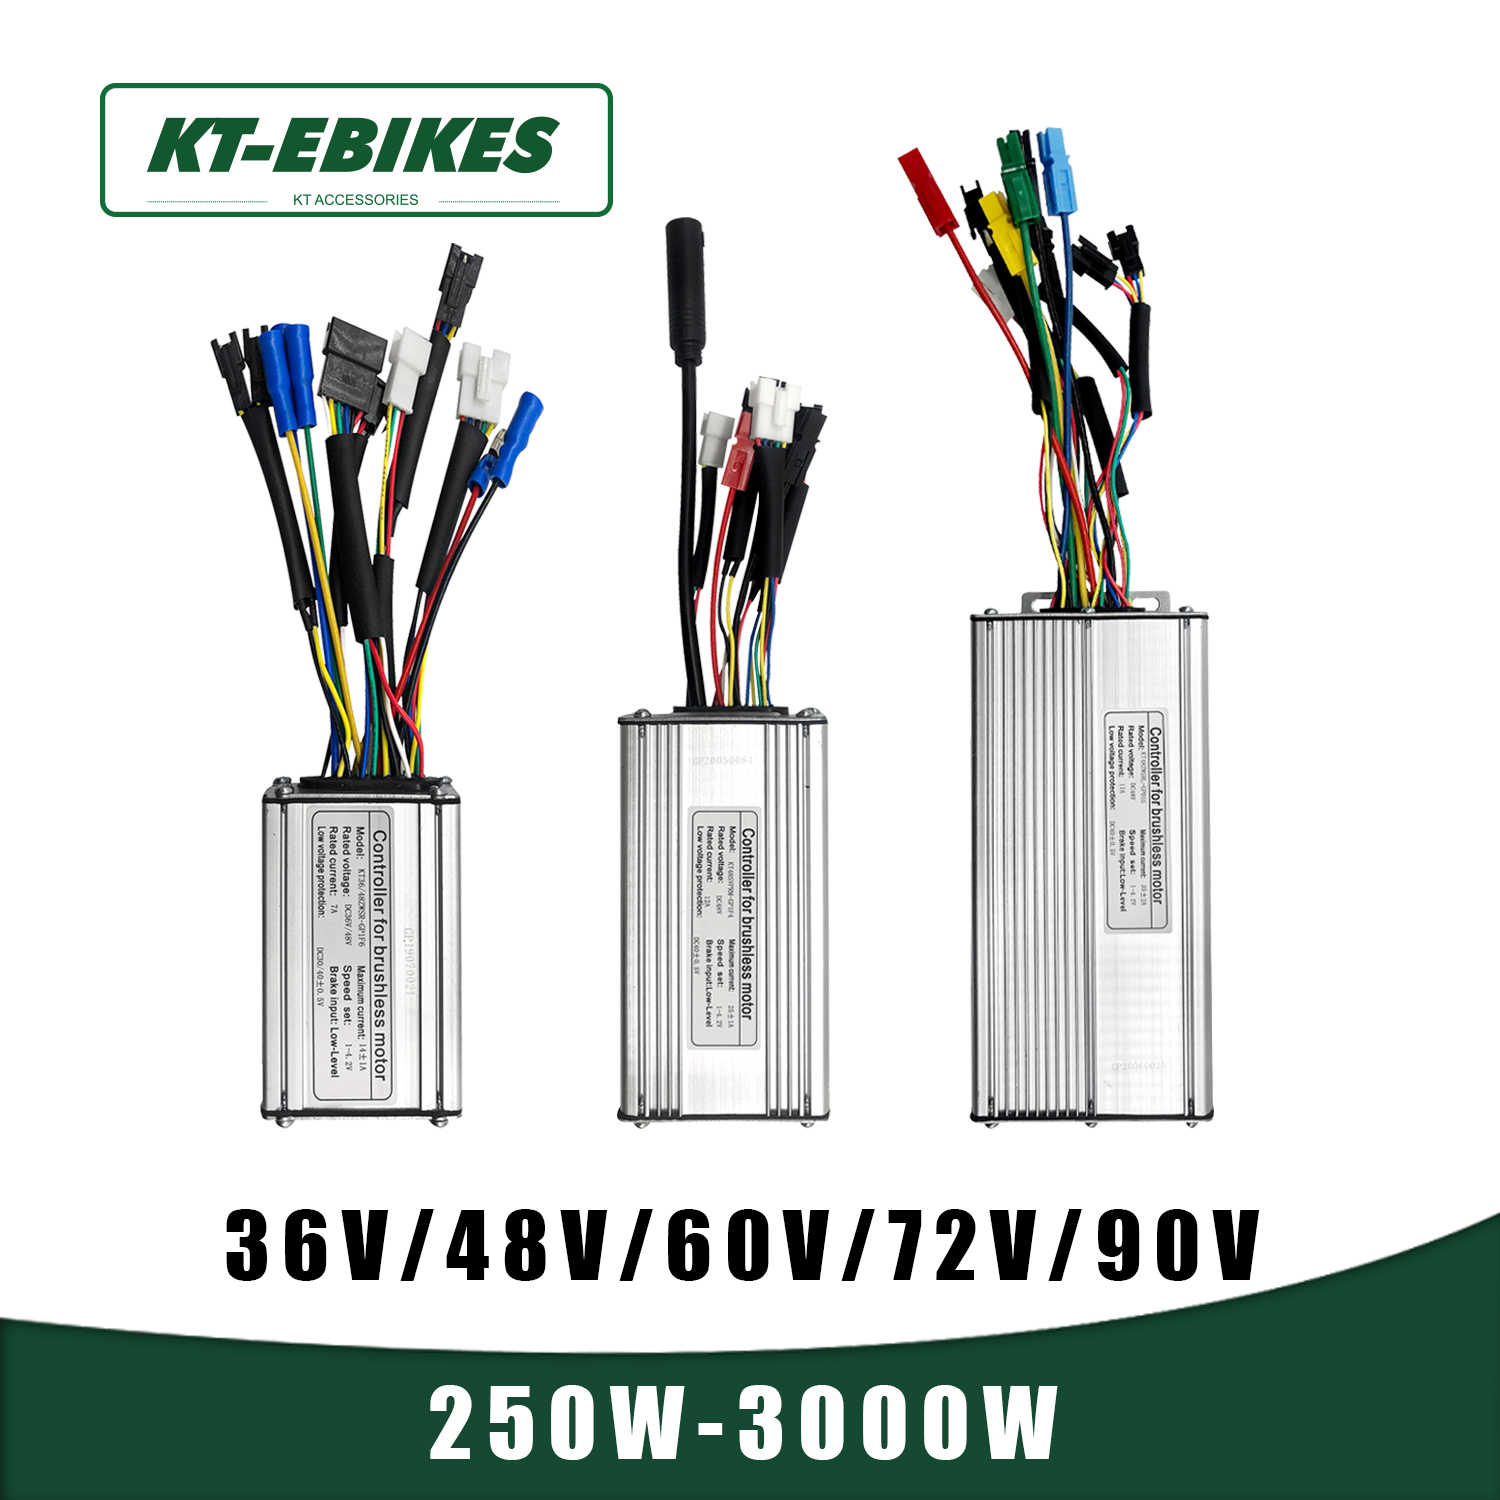 Brushless Motor Controller Electric Accessory for Mountain Bicycle 36V//48V 1000W//1500W NOBRAND Motor Controller